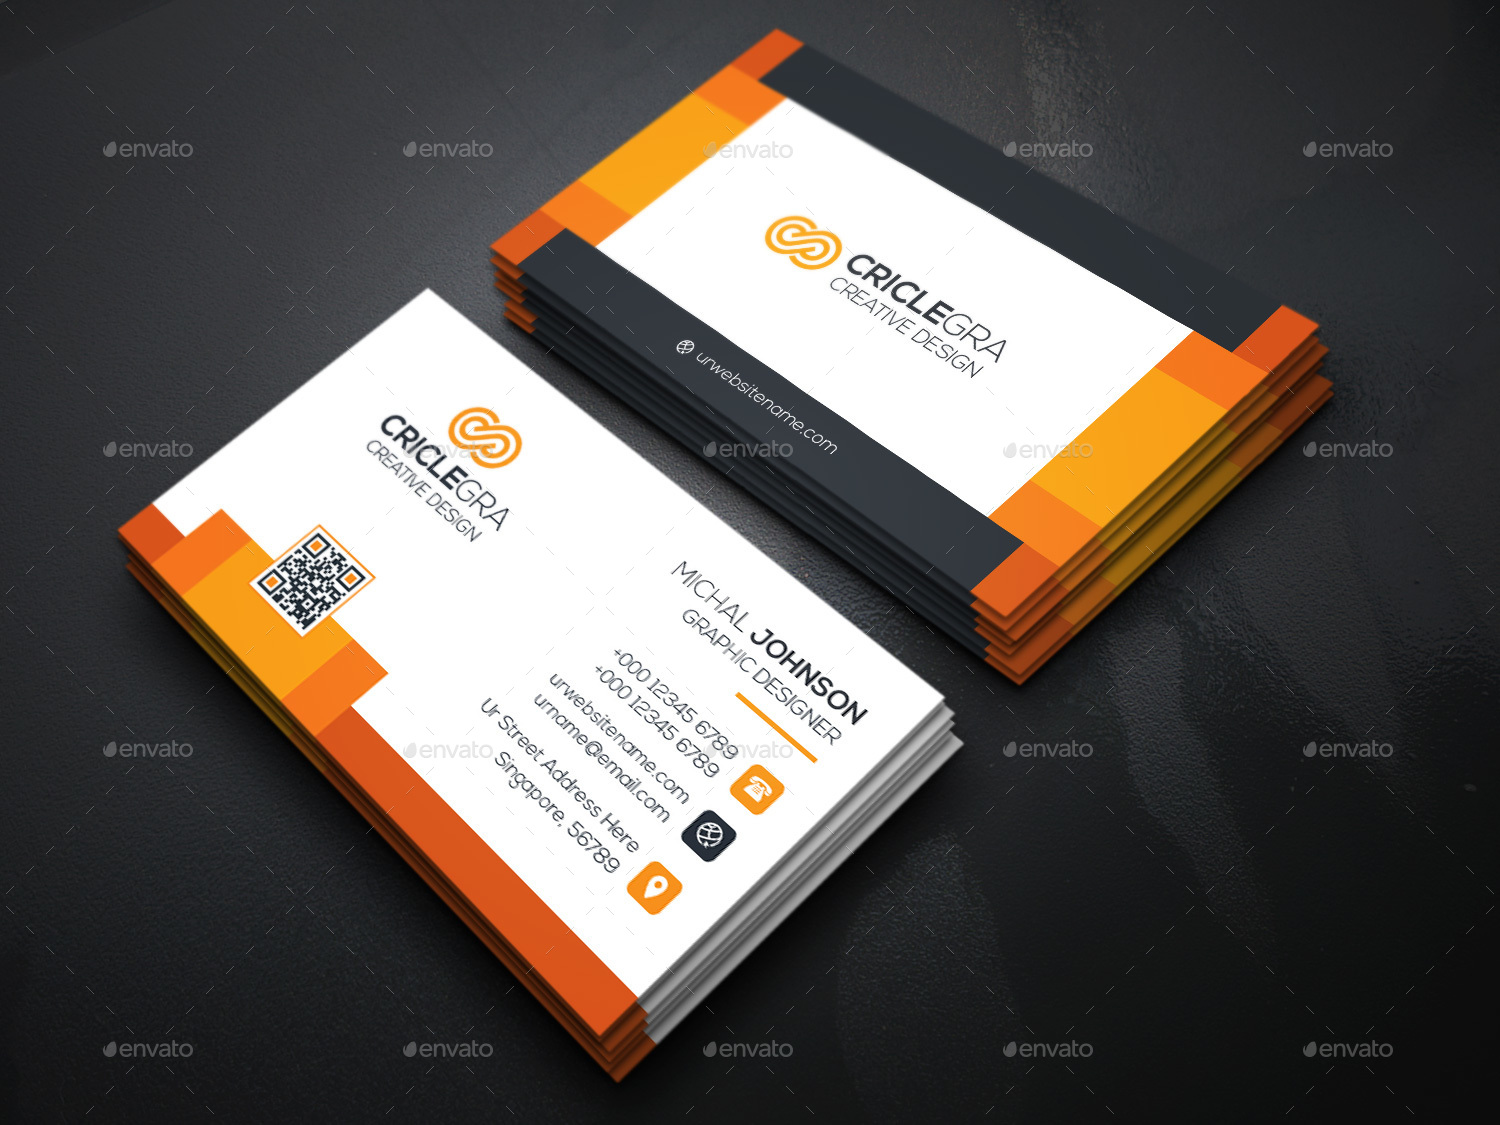 Corporate business card by generousart graphicriver image set04technology business cardg reheart Images